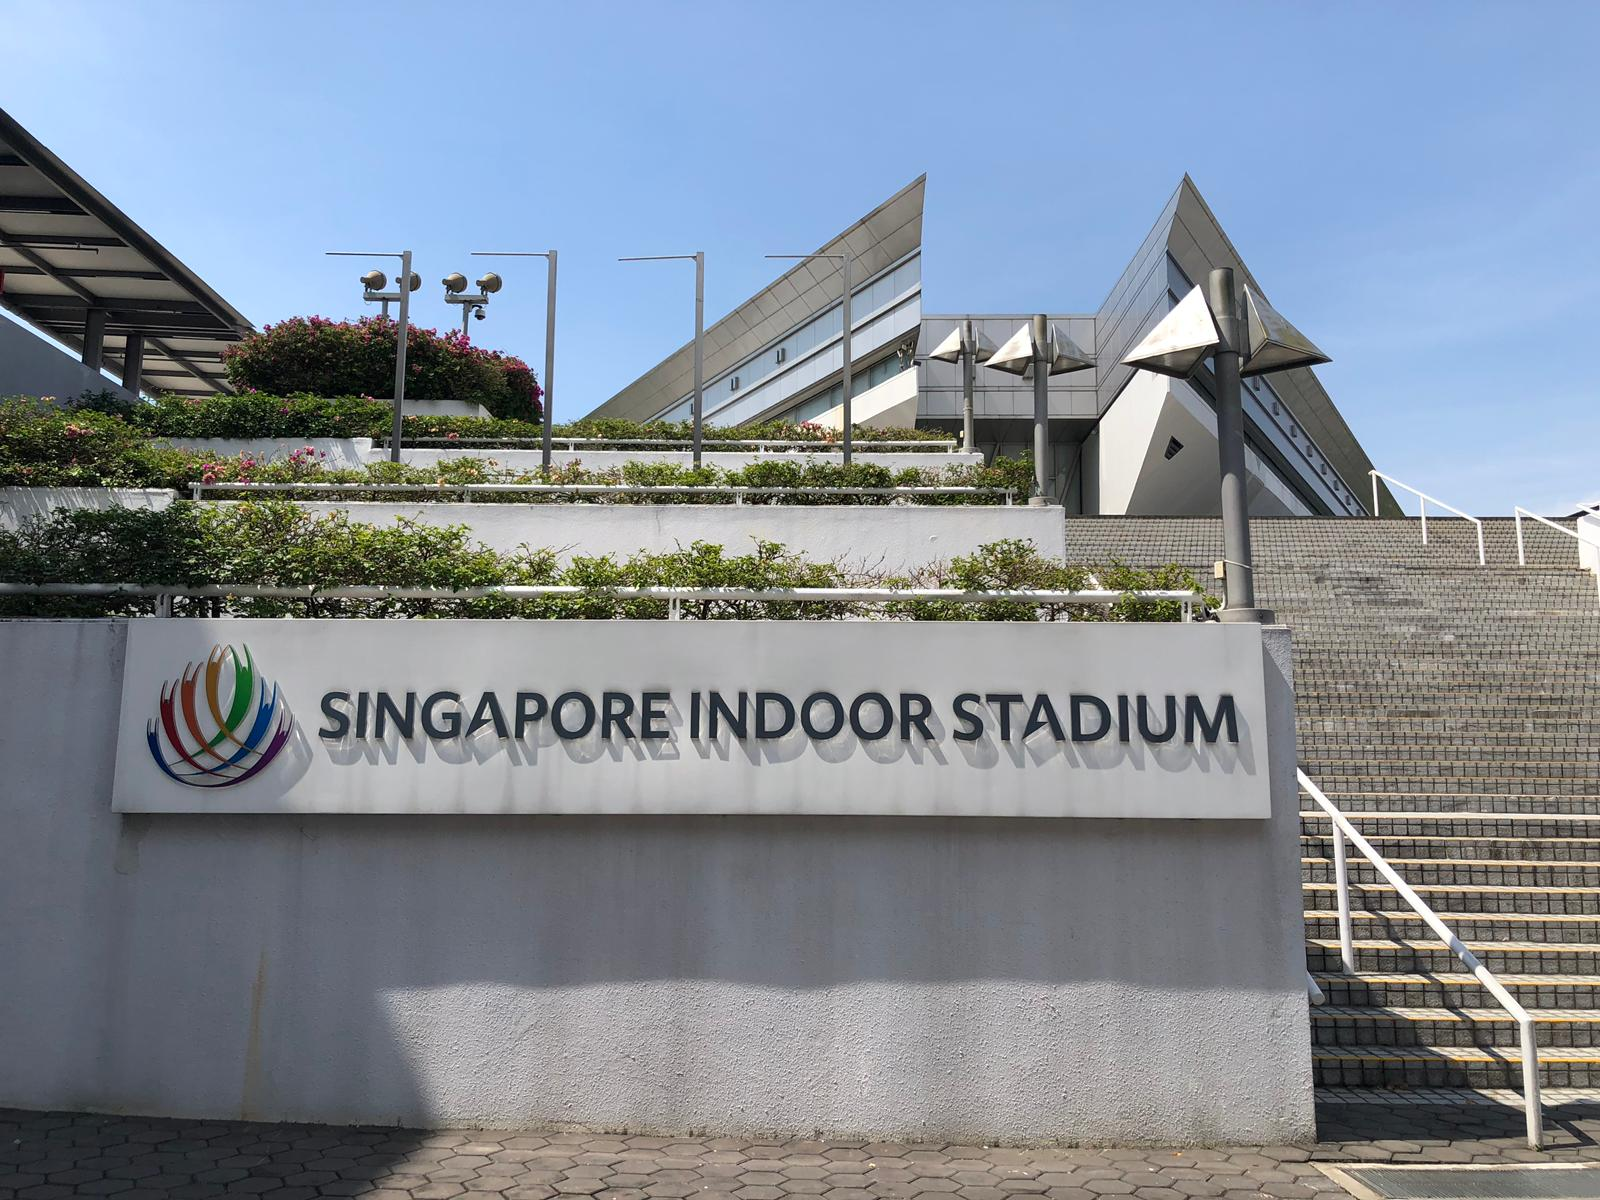 18 sg indoors stadium.jpg